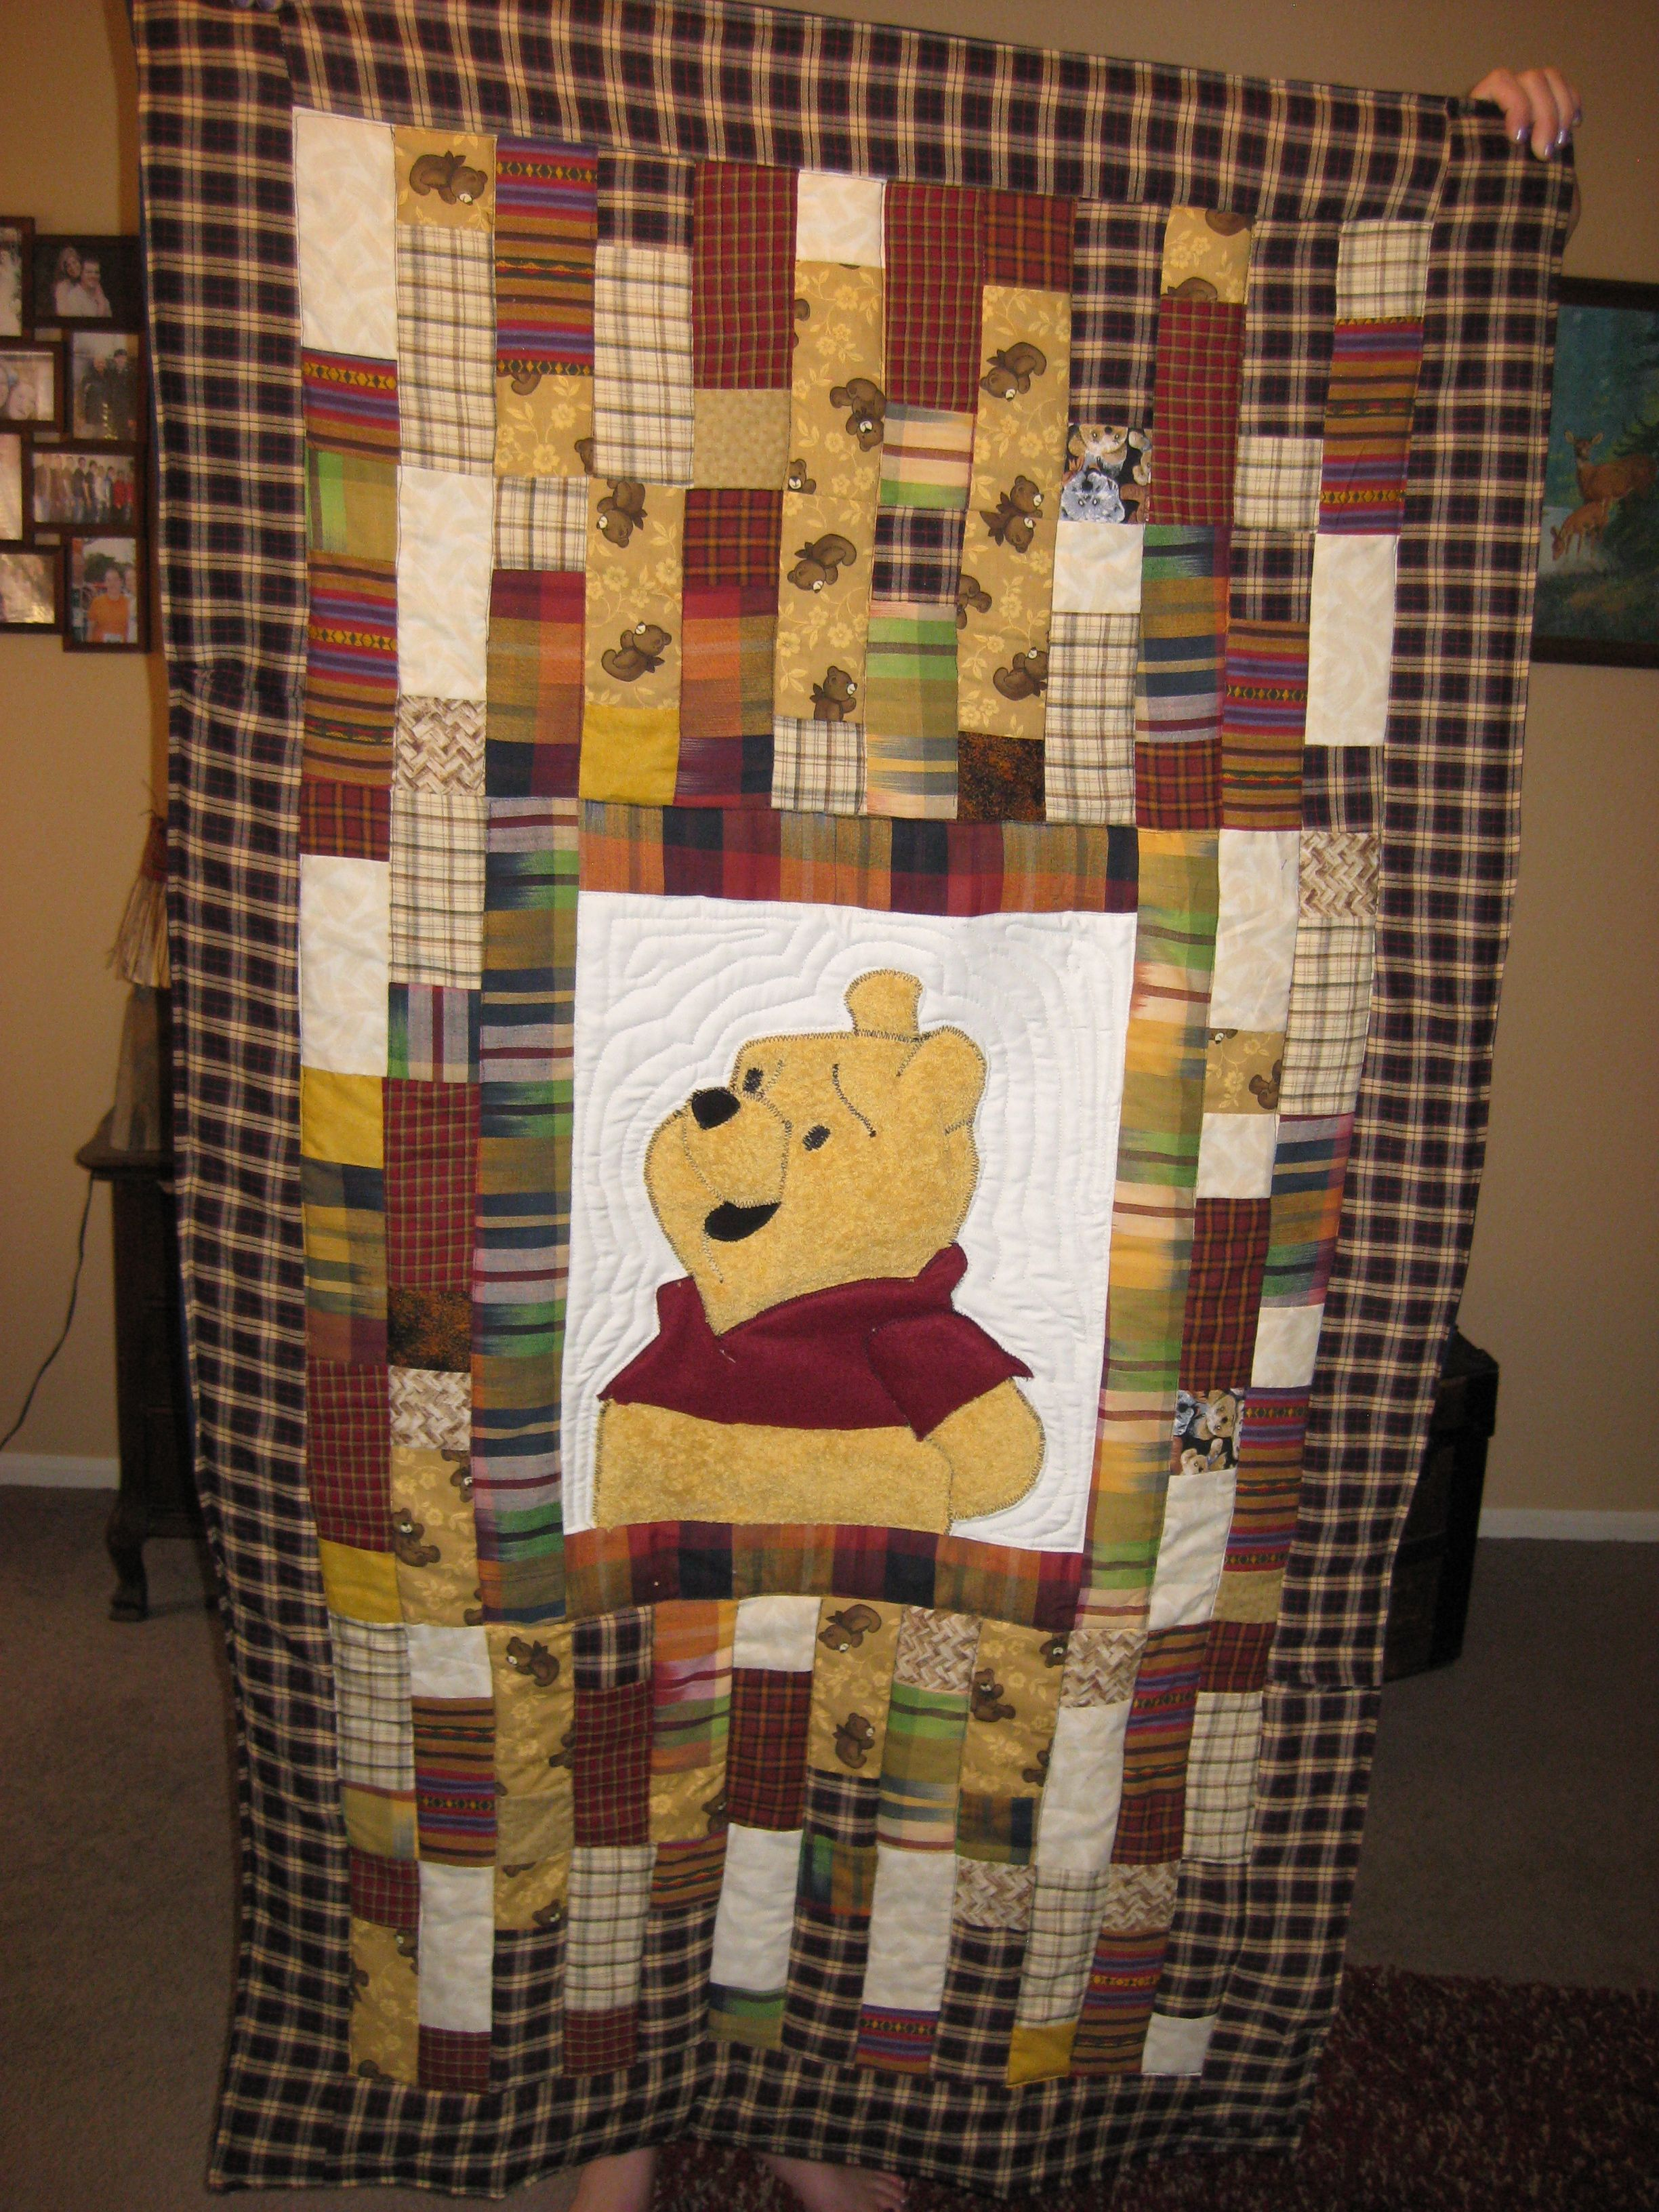 I made this Winnie the Pooh quilt. Love the colors! | sewing ... : pooh quilt - Adamdwight.com